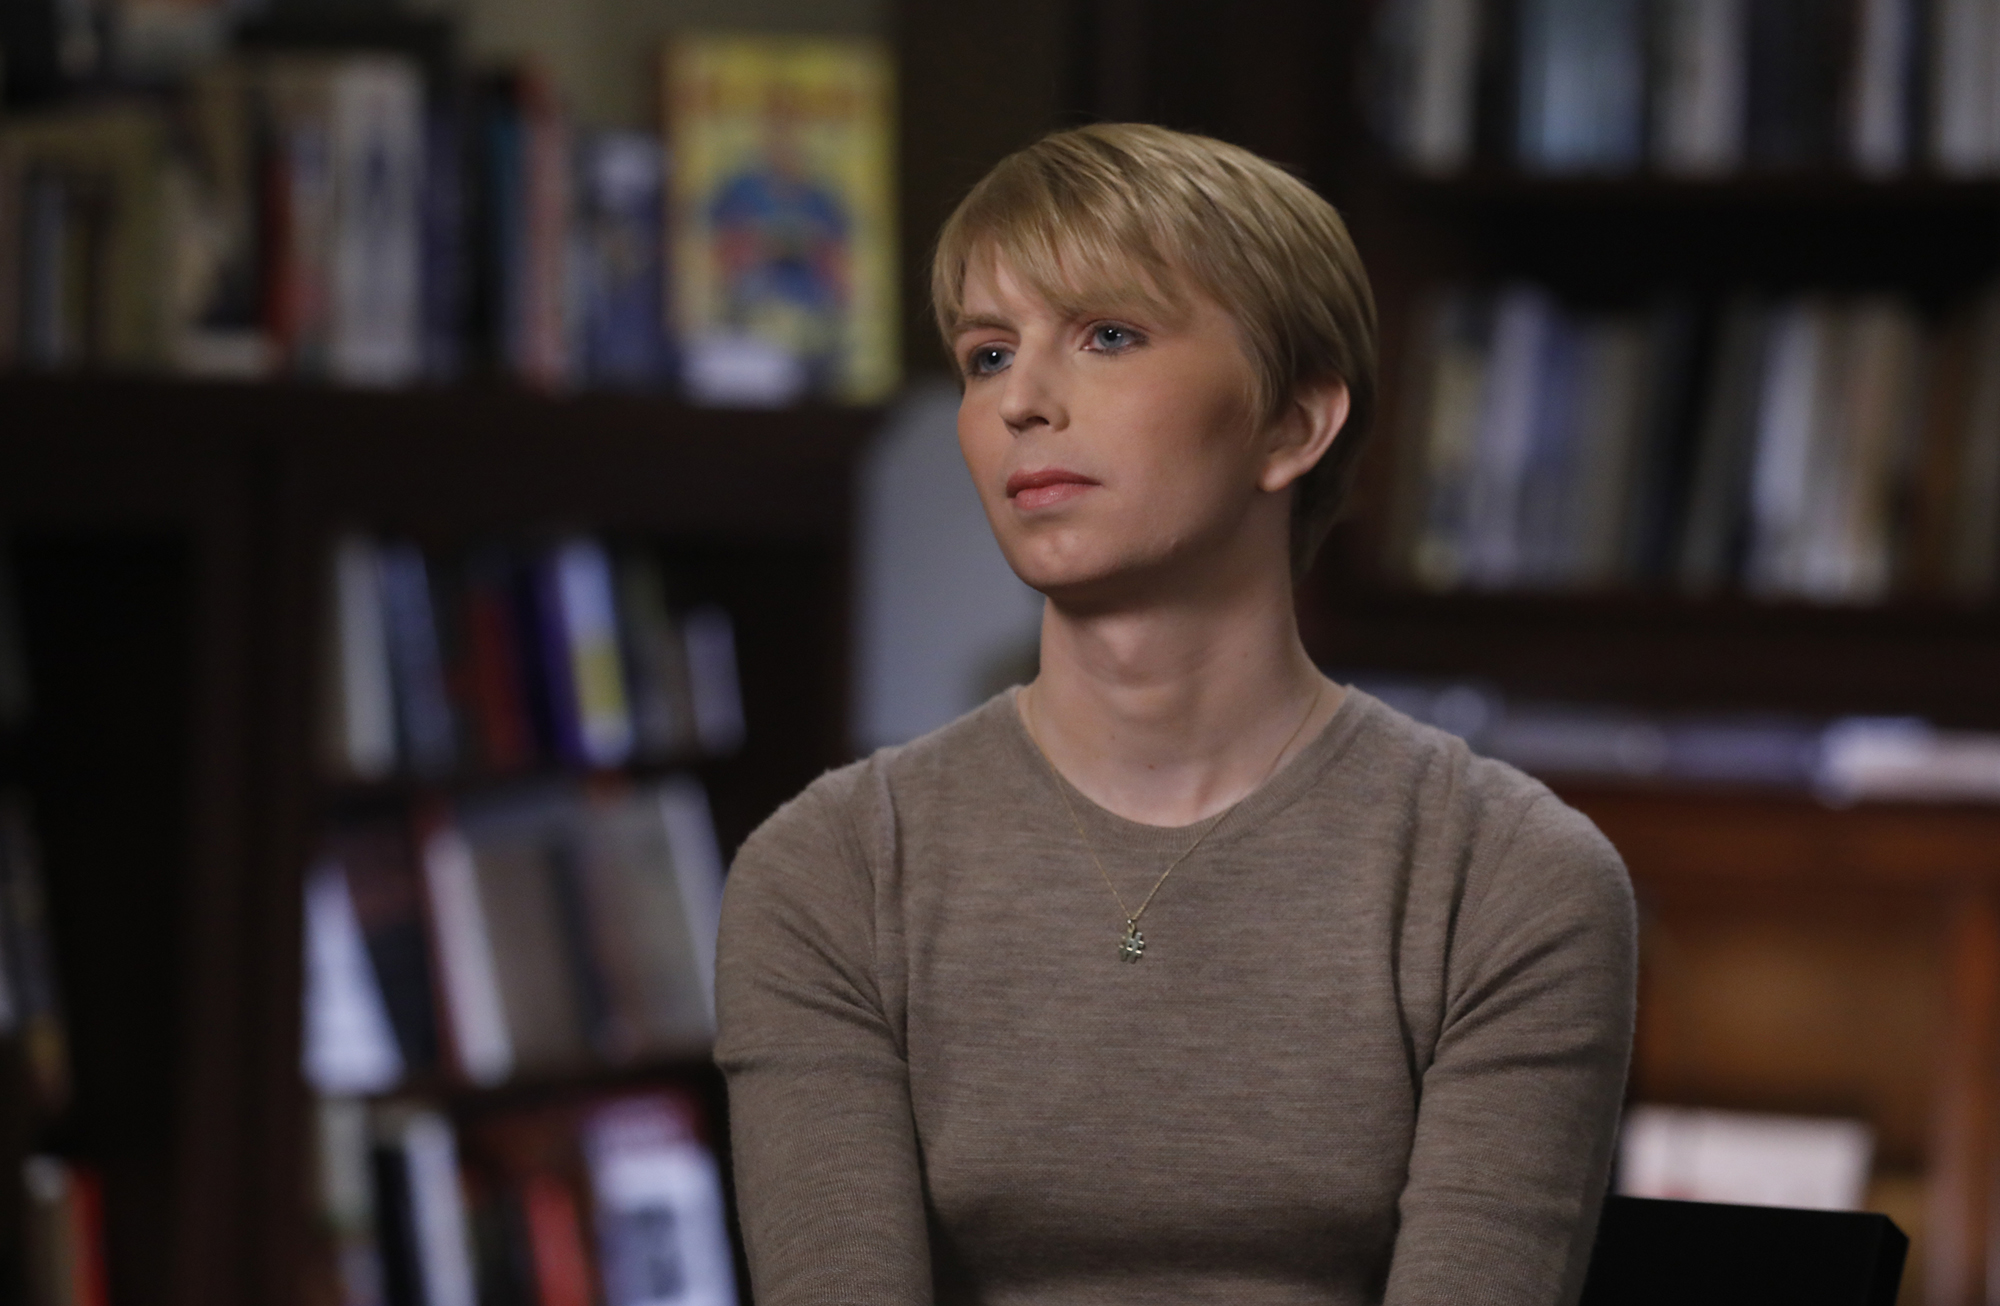 ABC NEWS - ABC News'  Nightline  co-anchor Juju Chang sits down with Chelsea Manning for the first exclusive television interview since Manning's prison release. The interview will air on an upcoming special edition of Nightline,  Declassified: The Chelsea Manning Story.                       (Photo by Heidi Gutman/ABC via Getty Images)                      CHELSEA MANNING